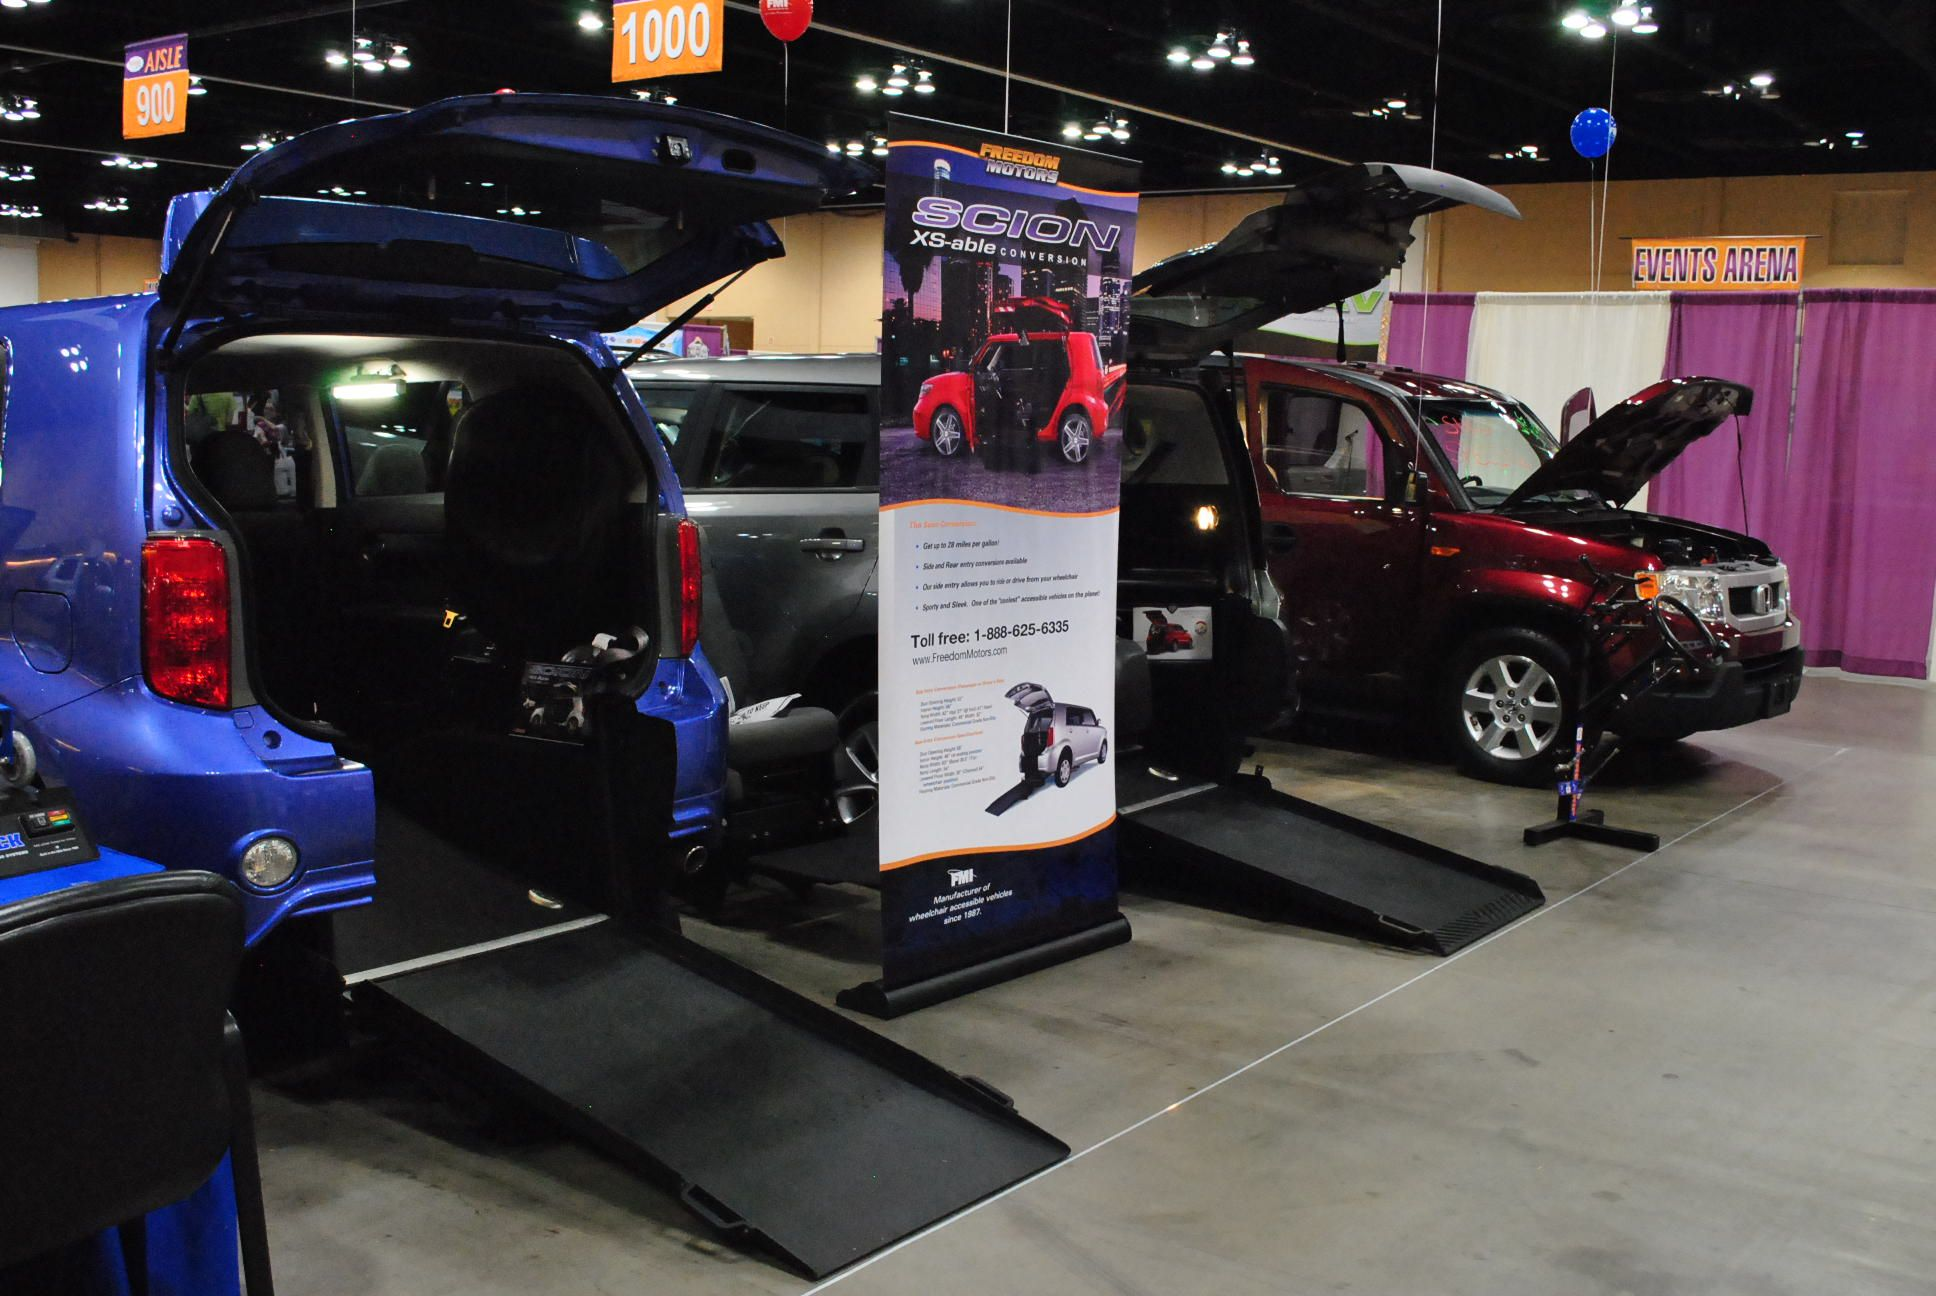 c16a8c5191 Freedom Motors USA amazing line of accessible vehicles on display at  Abilities Expo Chicago.     See it. Believe it. Do it. Watch thousands of  spinal cord ...